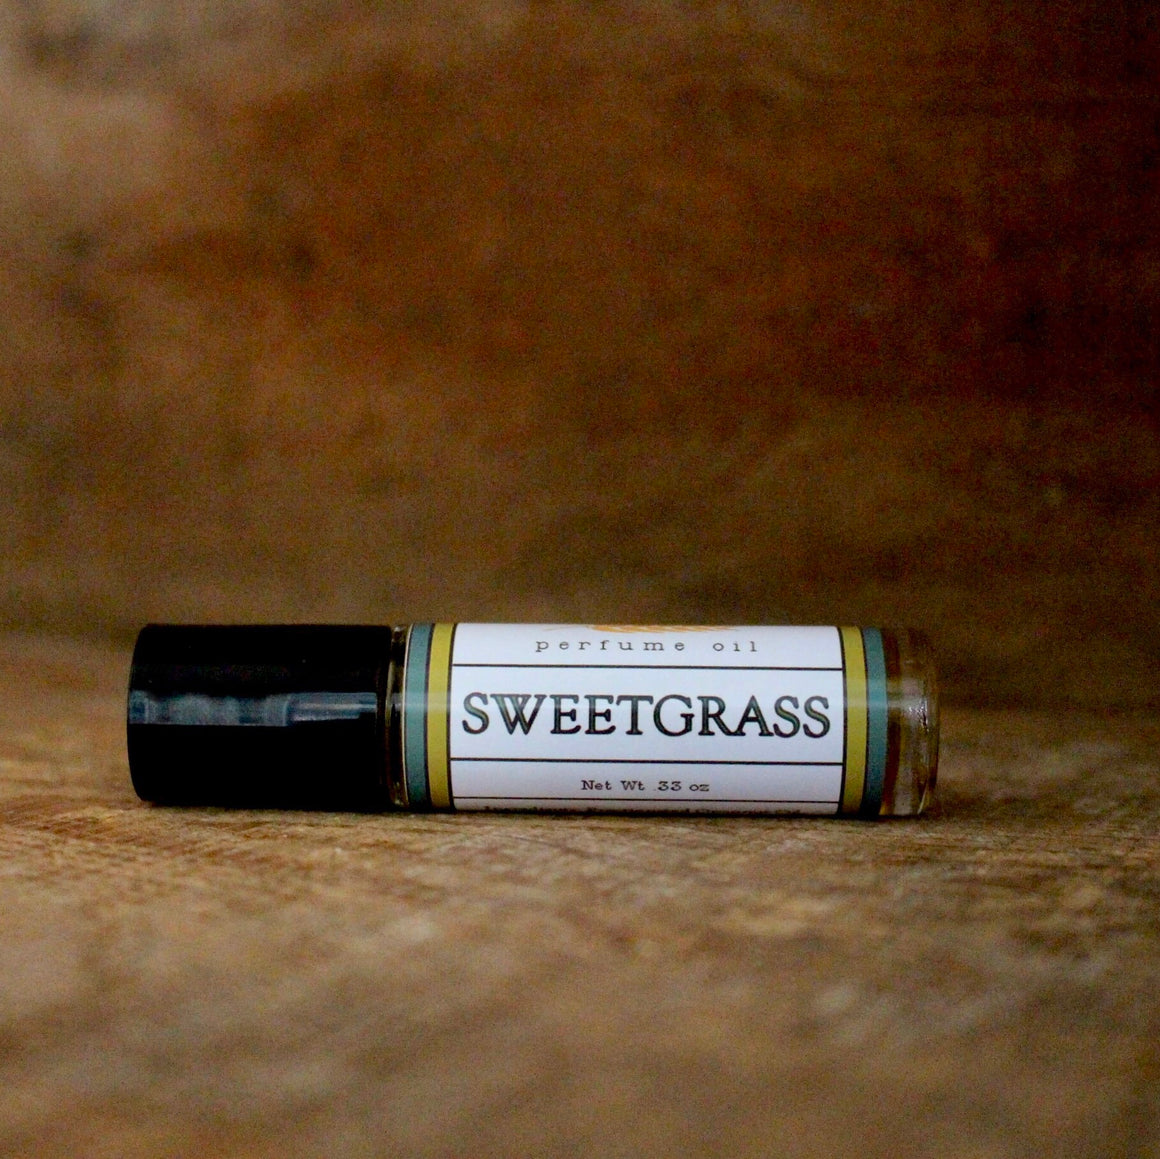 Sweetgrass Perfume Oil